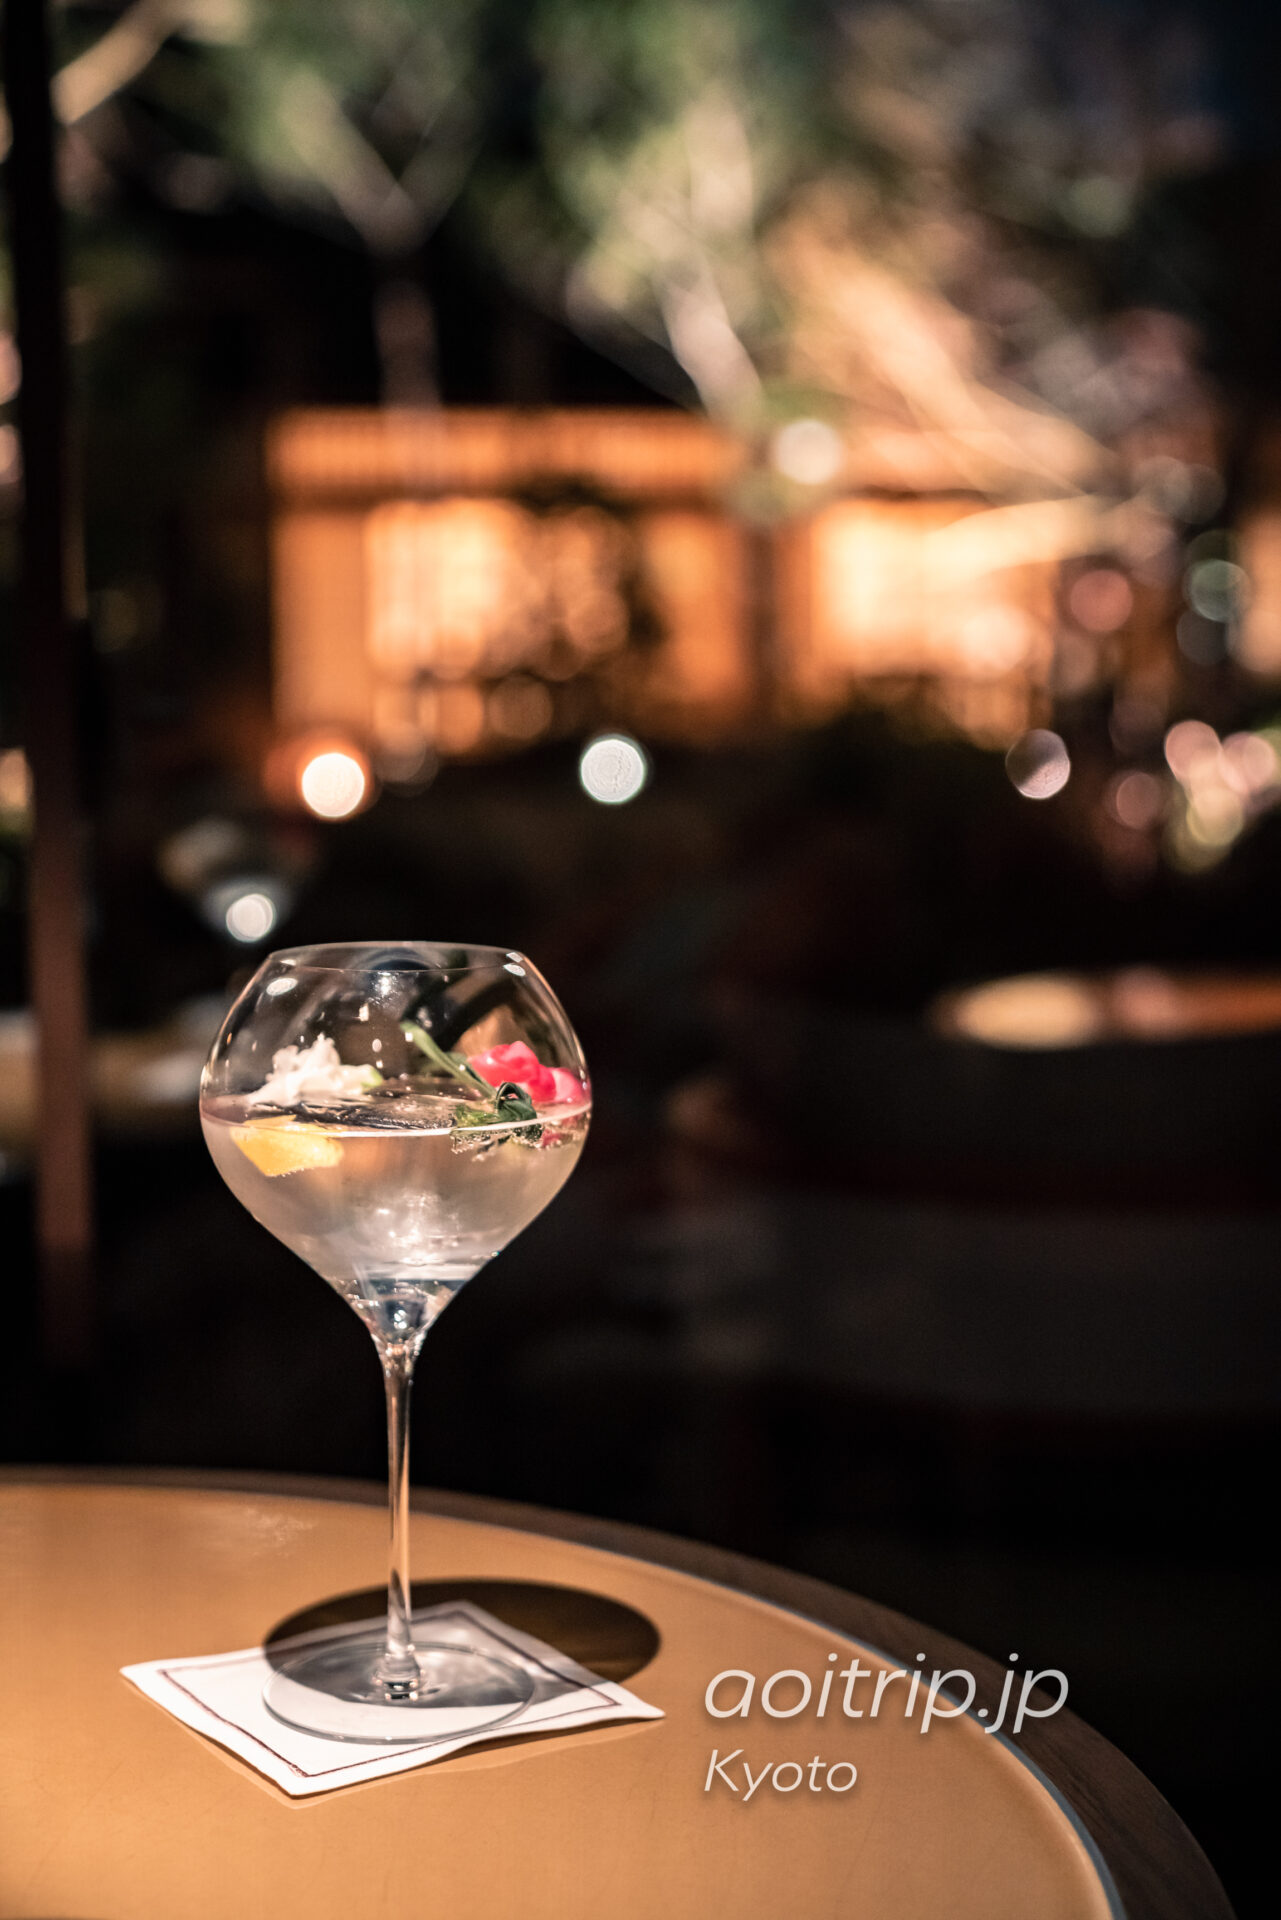 HOTEL THE MITSUI KYOTO ザ ガーデン バー The Garden Bar